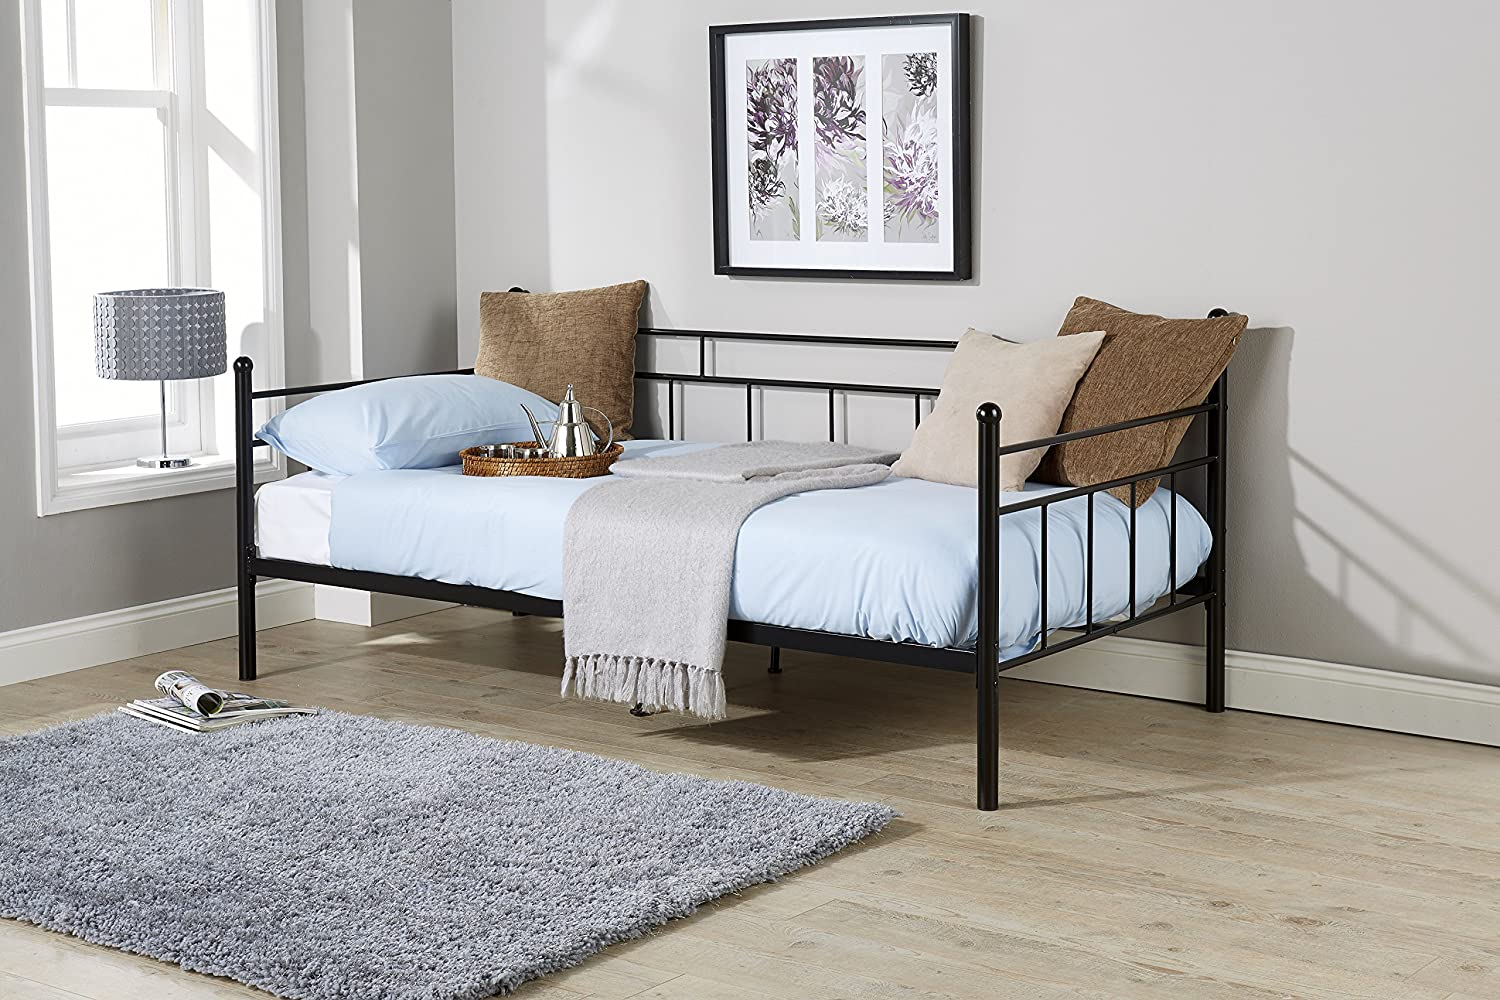 3ft 4ft 4ft6 Single Double Metal Day Bed Frame In Black Pink Blue White Silver Arizona Day Bed 3ft Single Black No Mattress Amazon Co Uk Kitchen Home